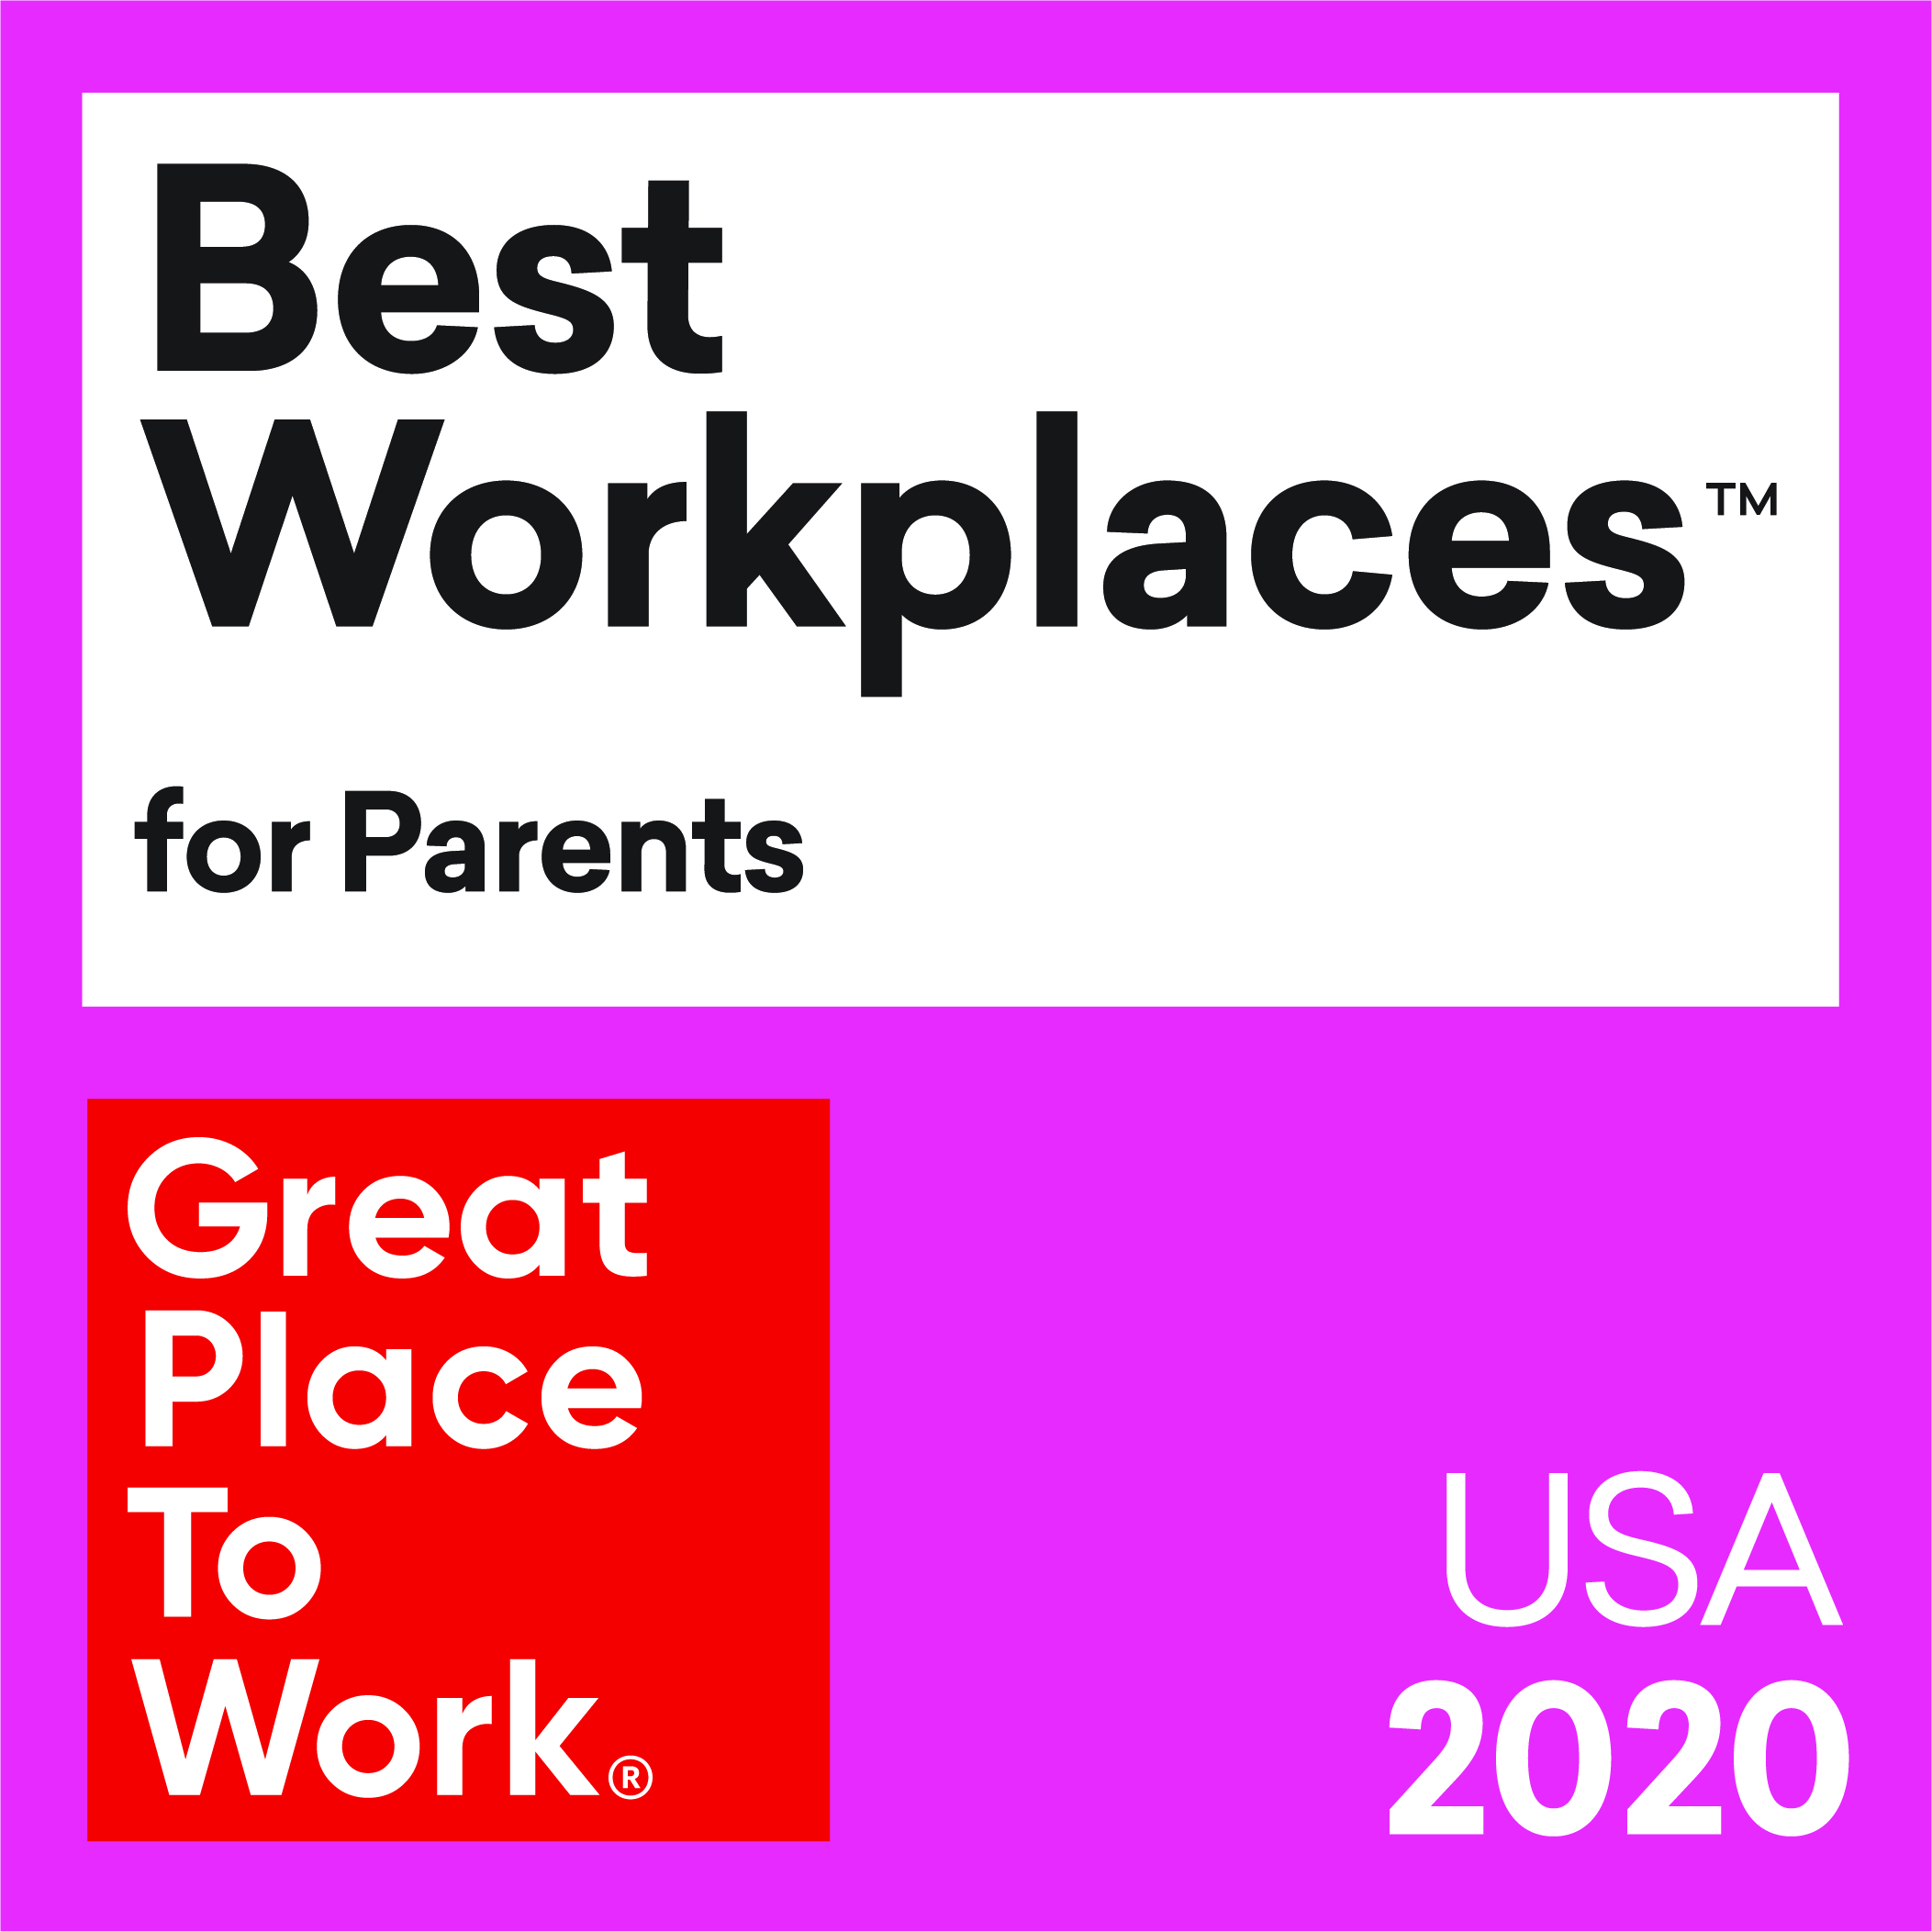 GPTW Best Workplaces for Parents 2020